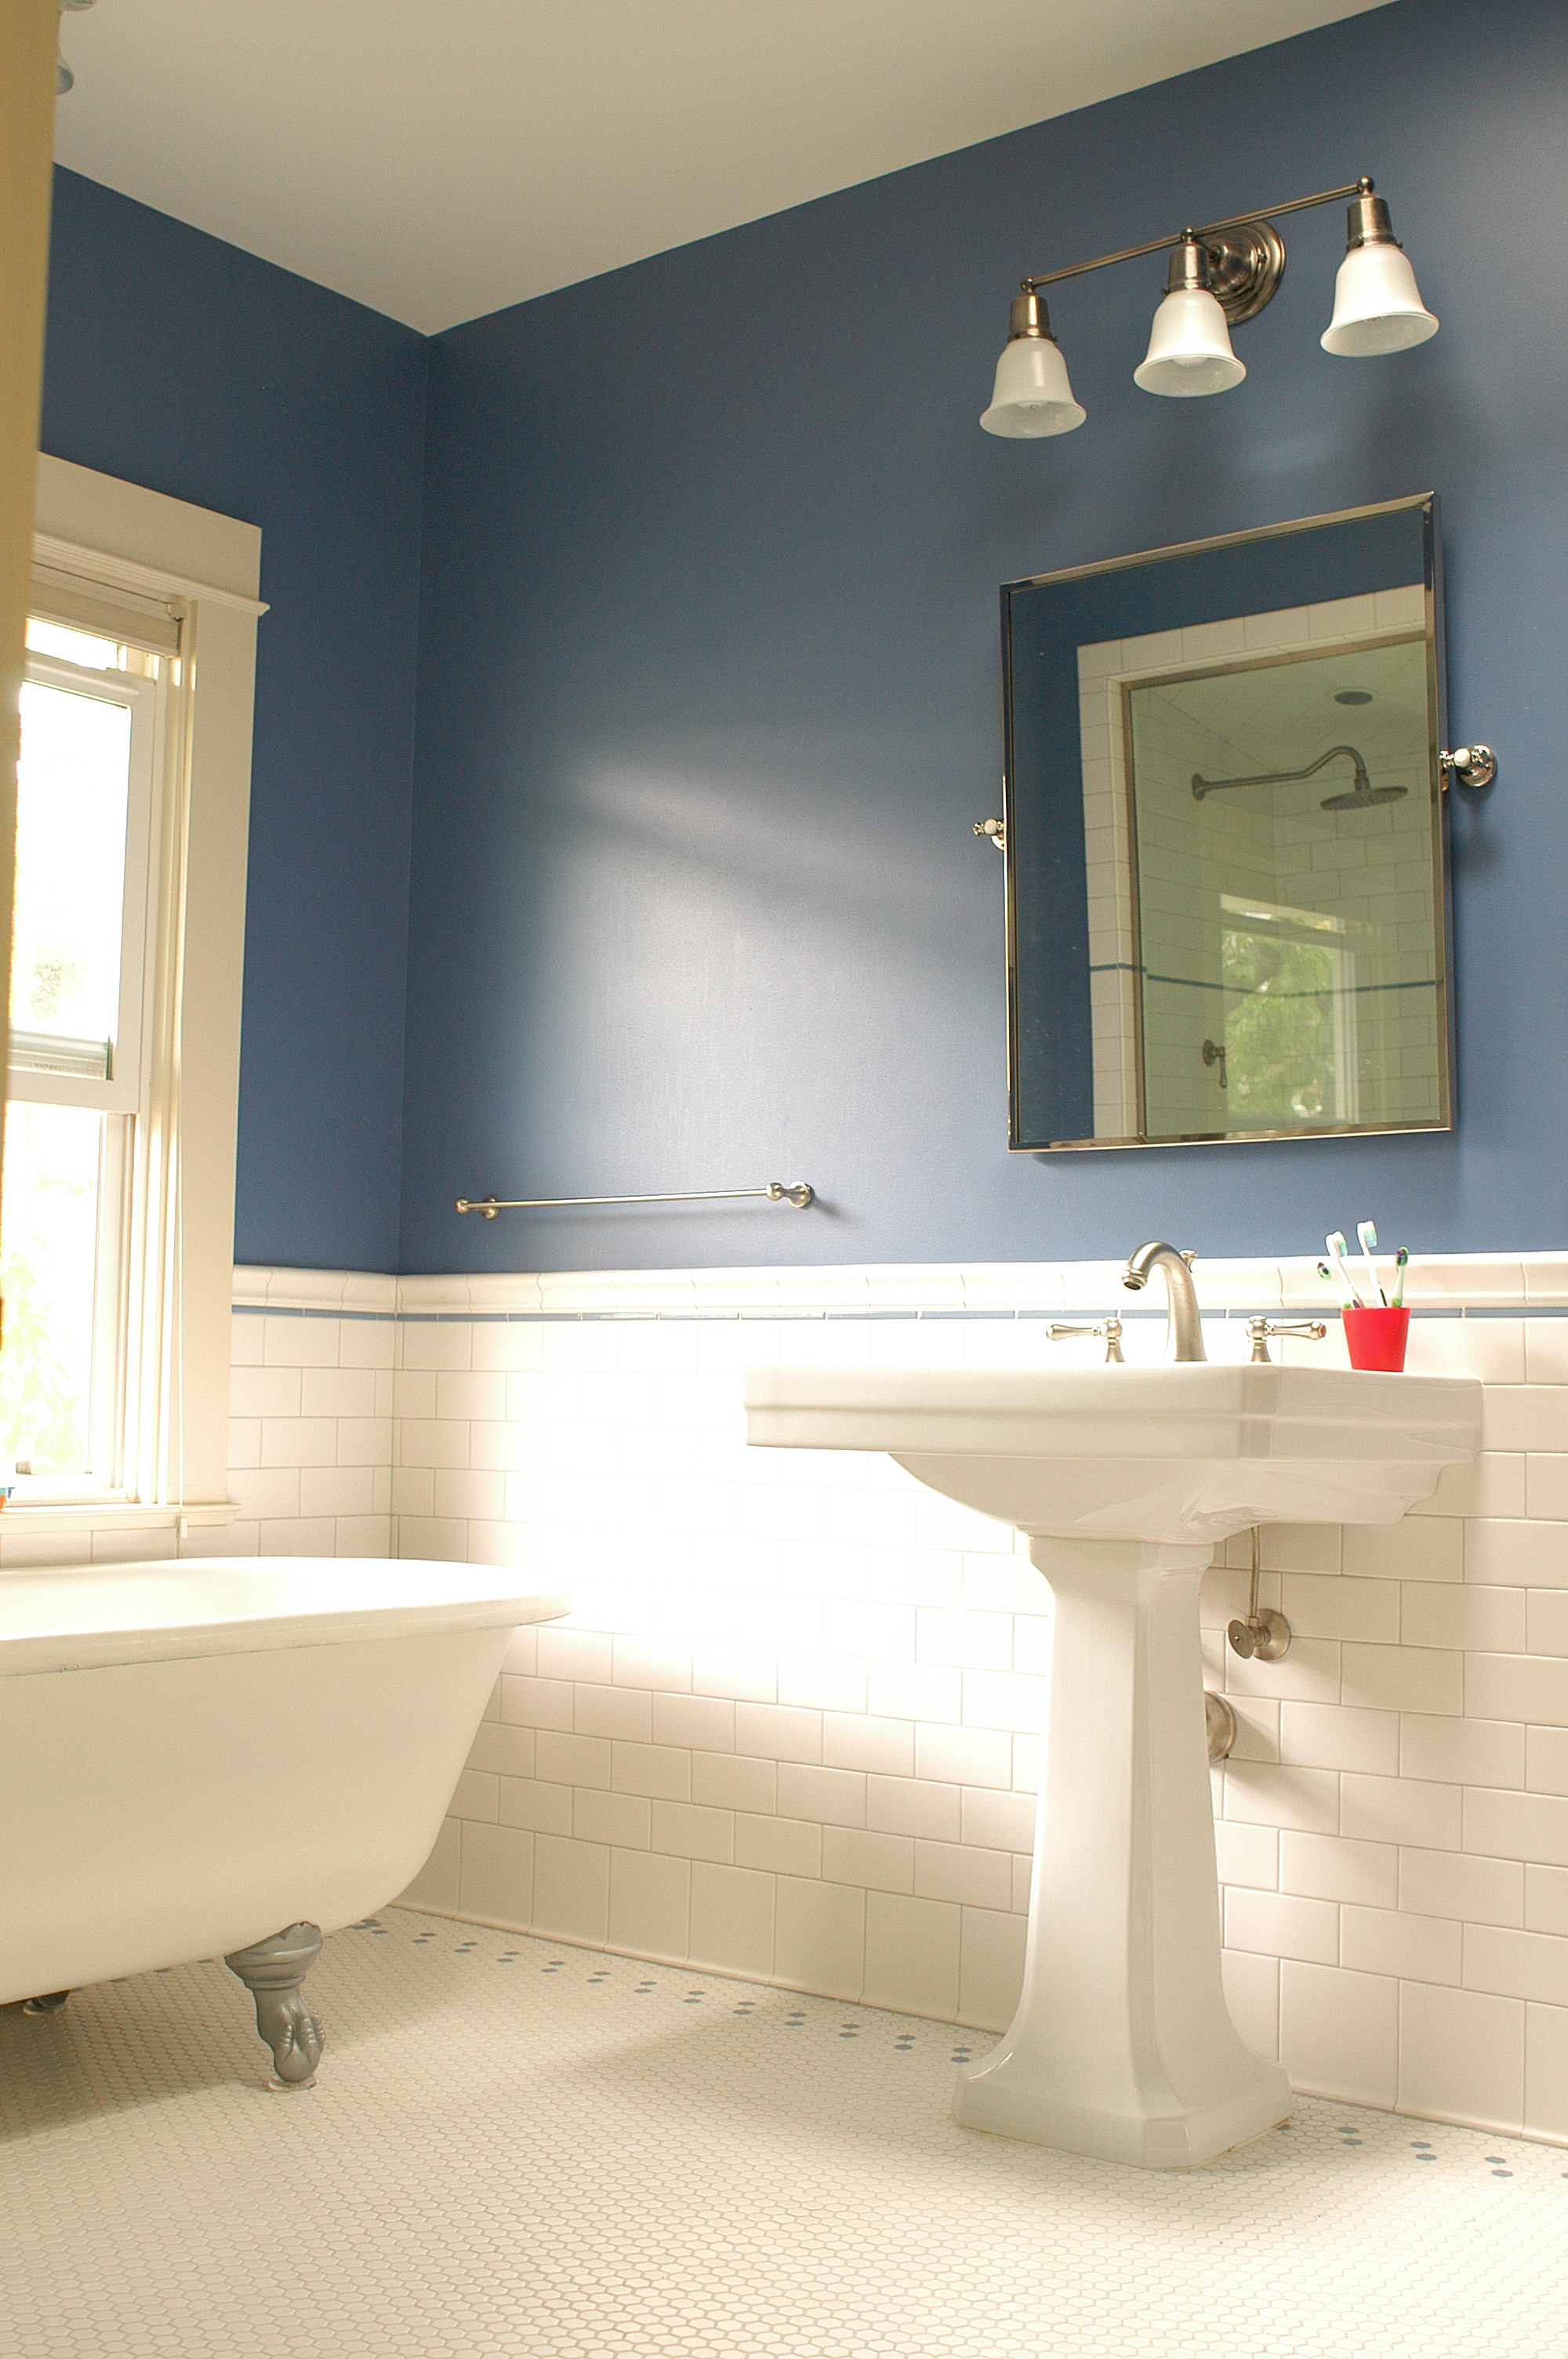 Bathroom Remodel in Capital Hill Victorian